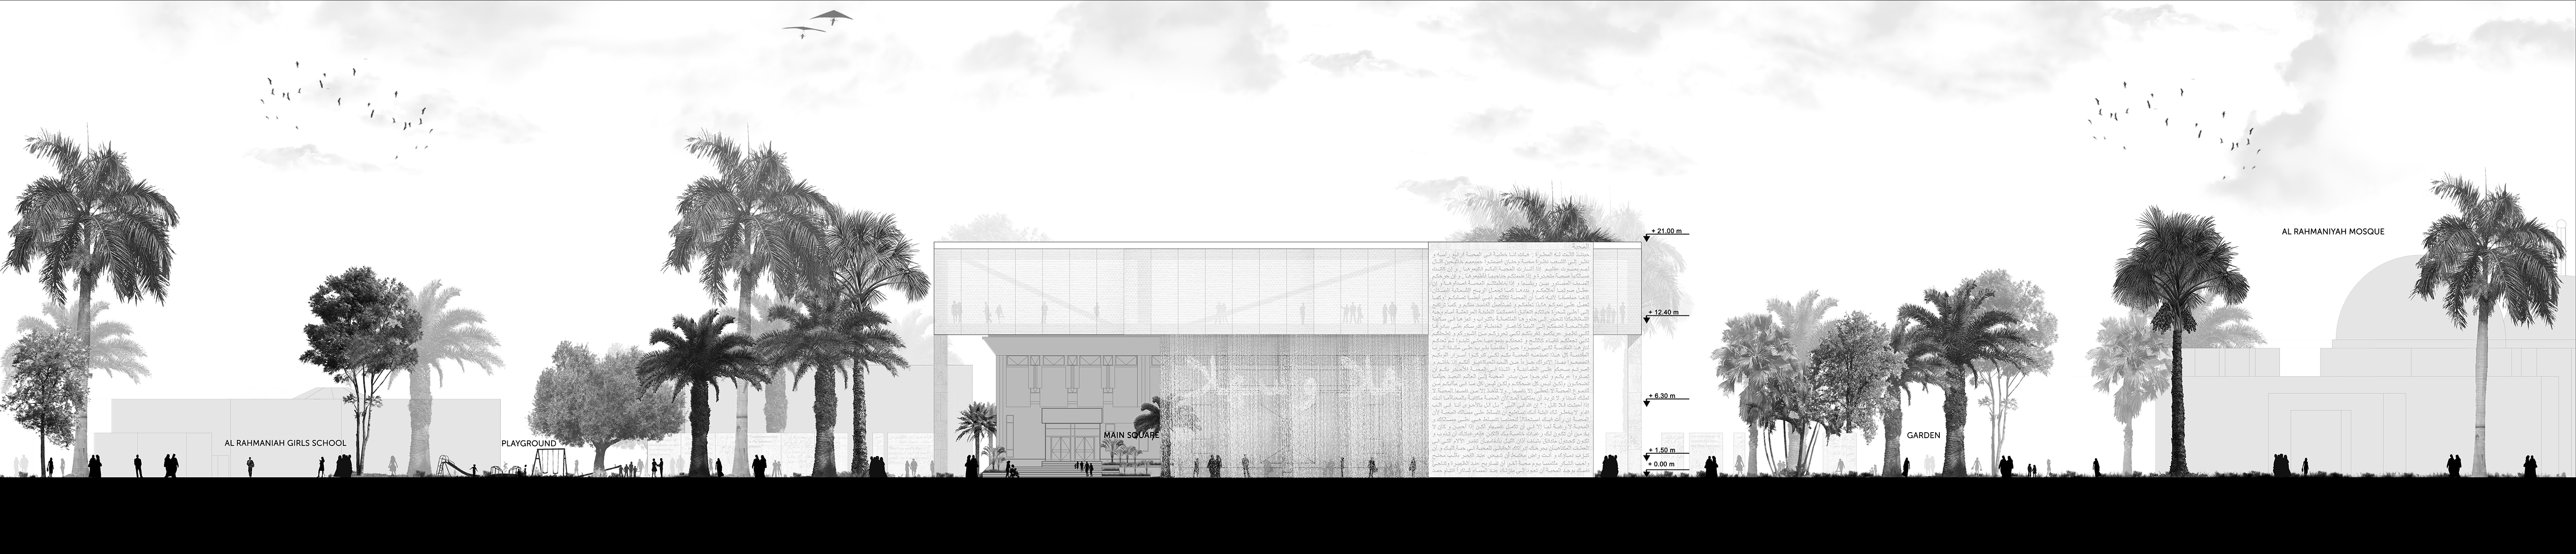 /Volumes/TARI-Architects_SERVER/Work in Progress/COMPETITION_DAU